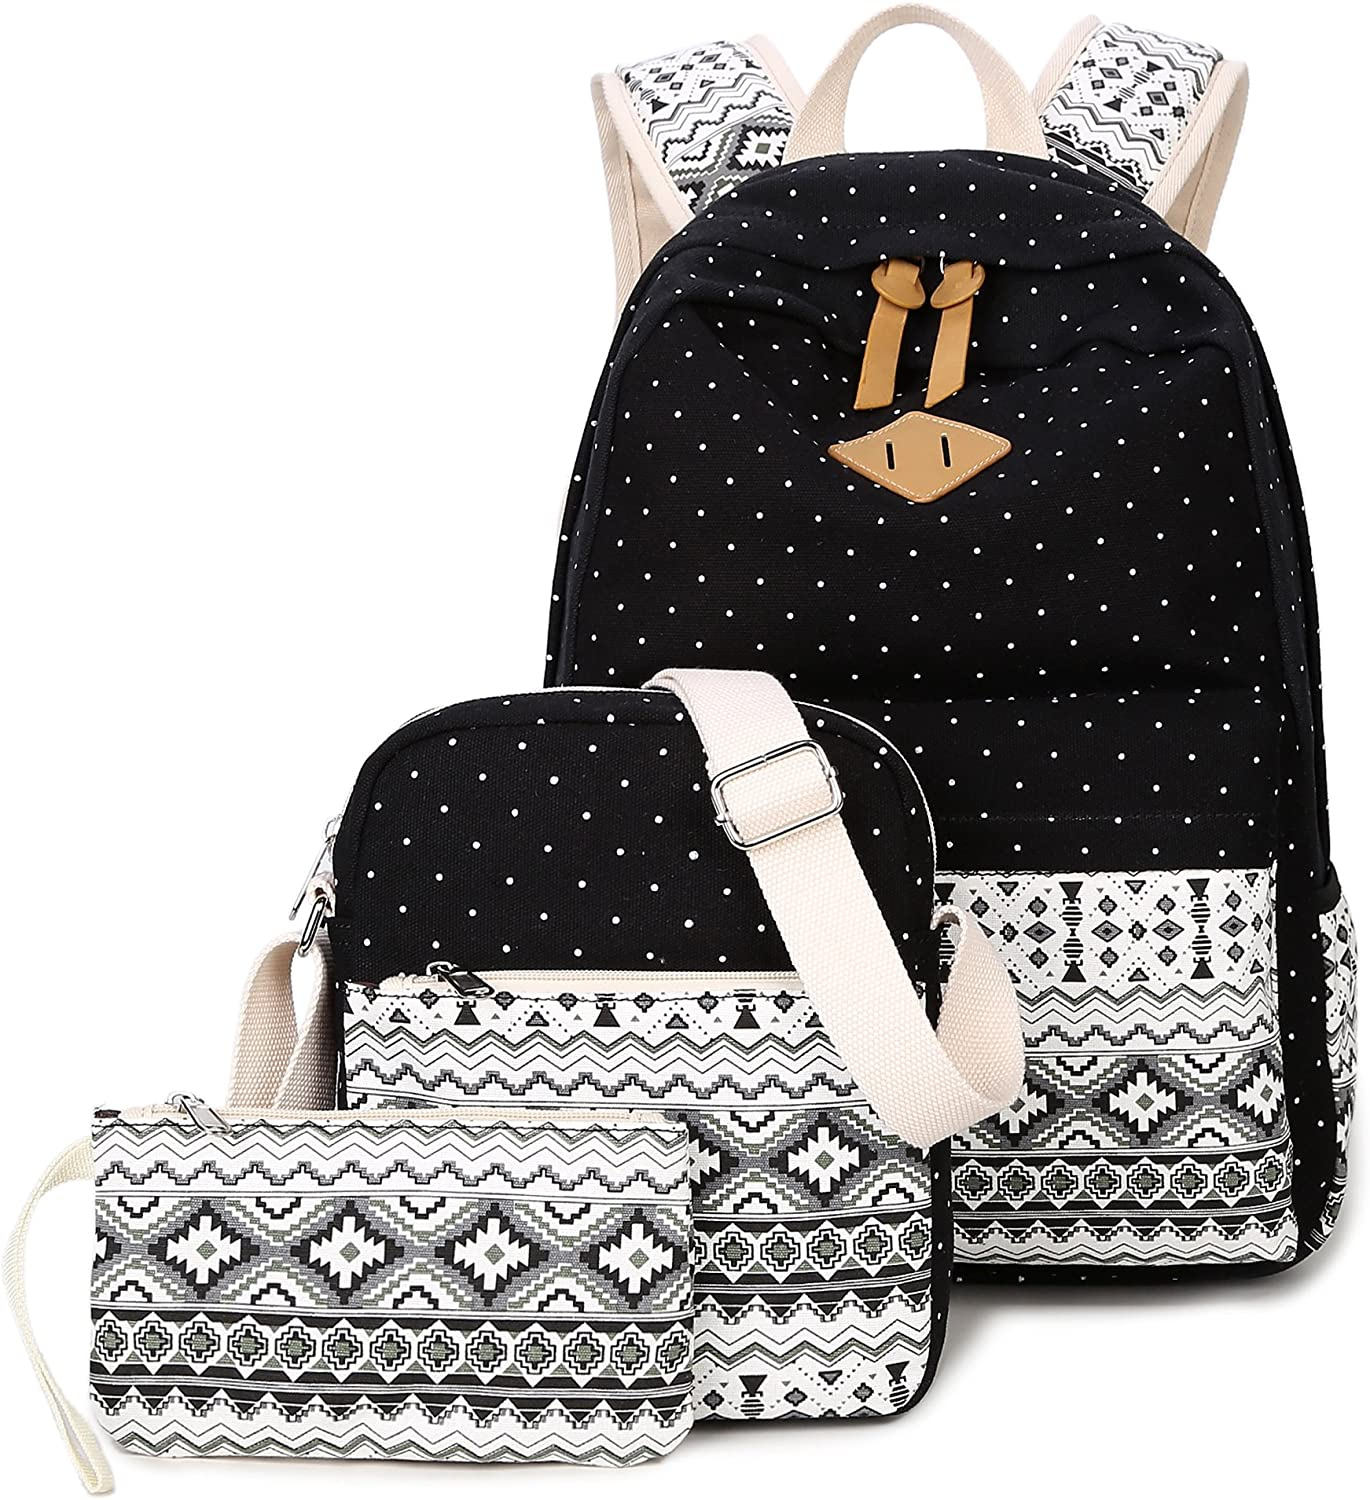 TOTOD New Listed Fashion Backpack Teenage Girls Boys School Backpack Bag Patchwork Students Bags